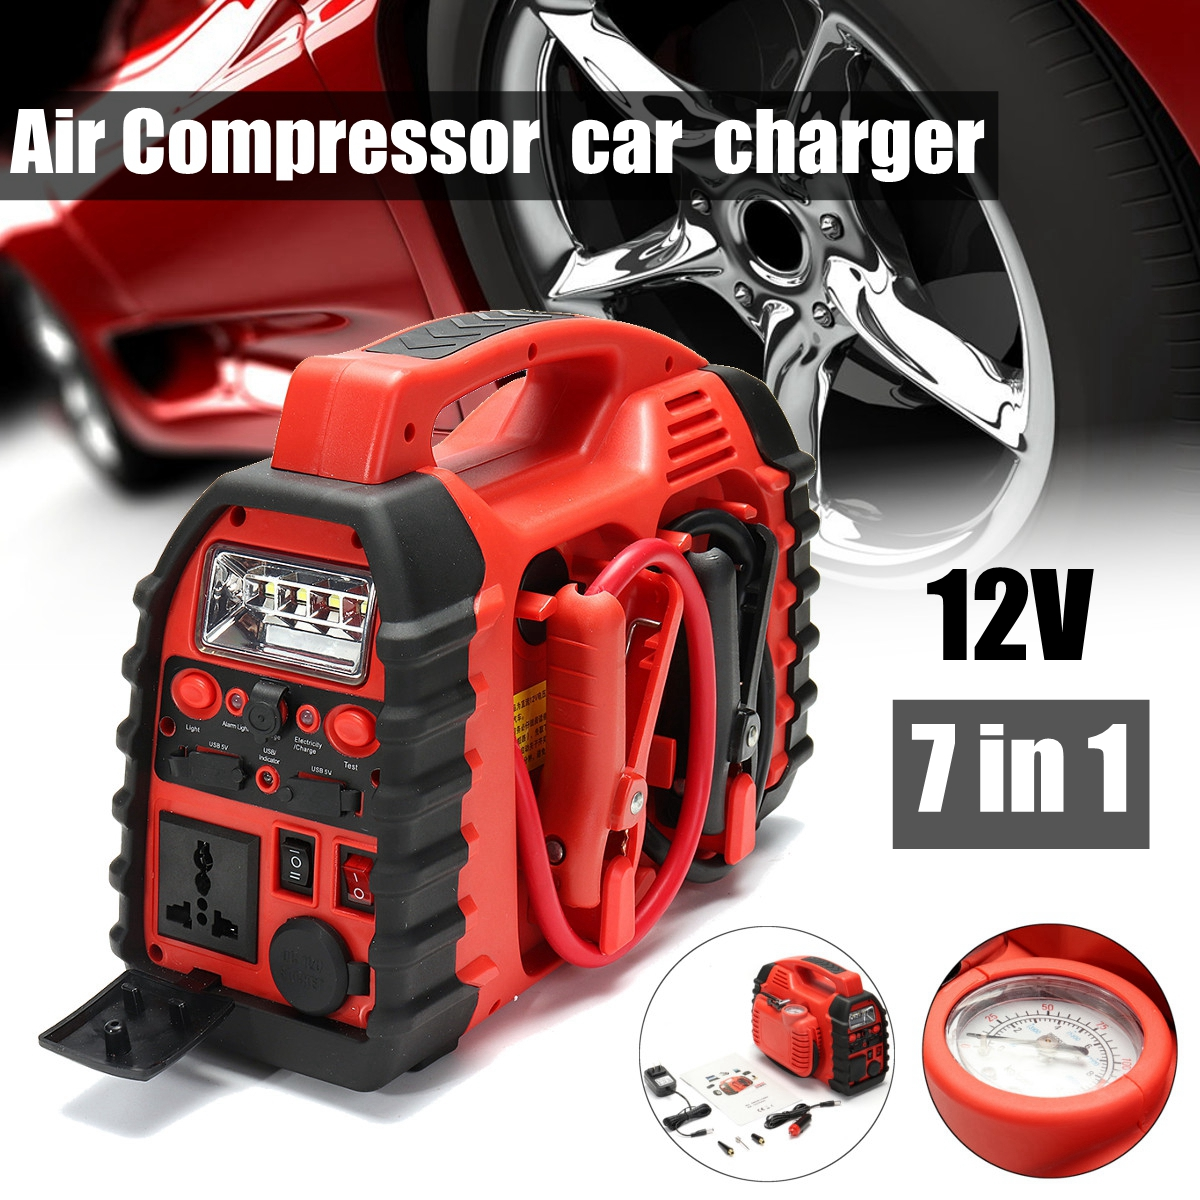 7 In 1/ 6 In 1 12V Multifunation Air Compressor Air Compressor Car Charger Battery Jump Starter Portable Boost7 In 1/ 6 In 1 12V Multifunation Air Compressor Air Compressor Car Charger Battery Jump Starter Portable Boost